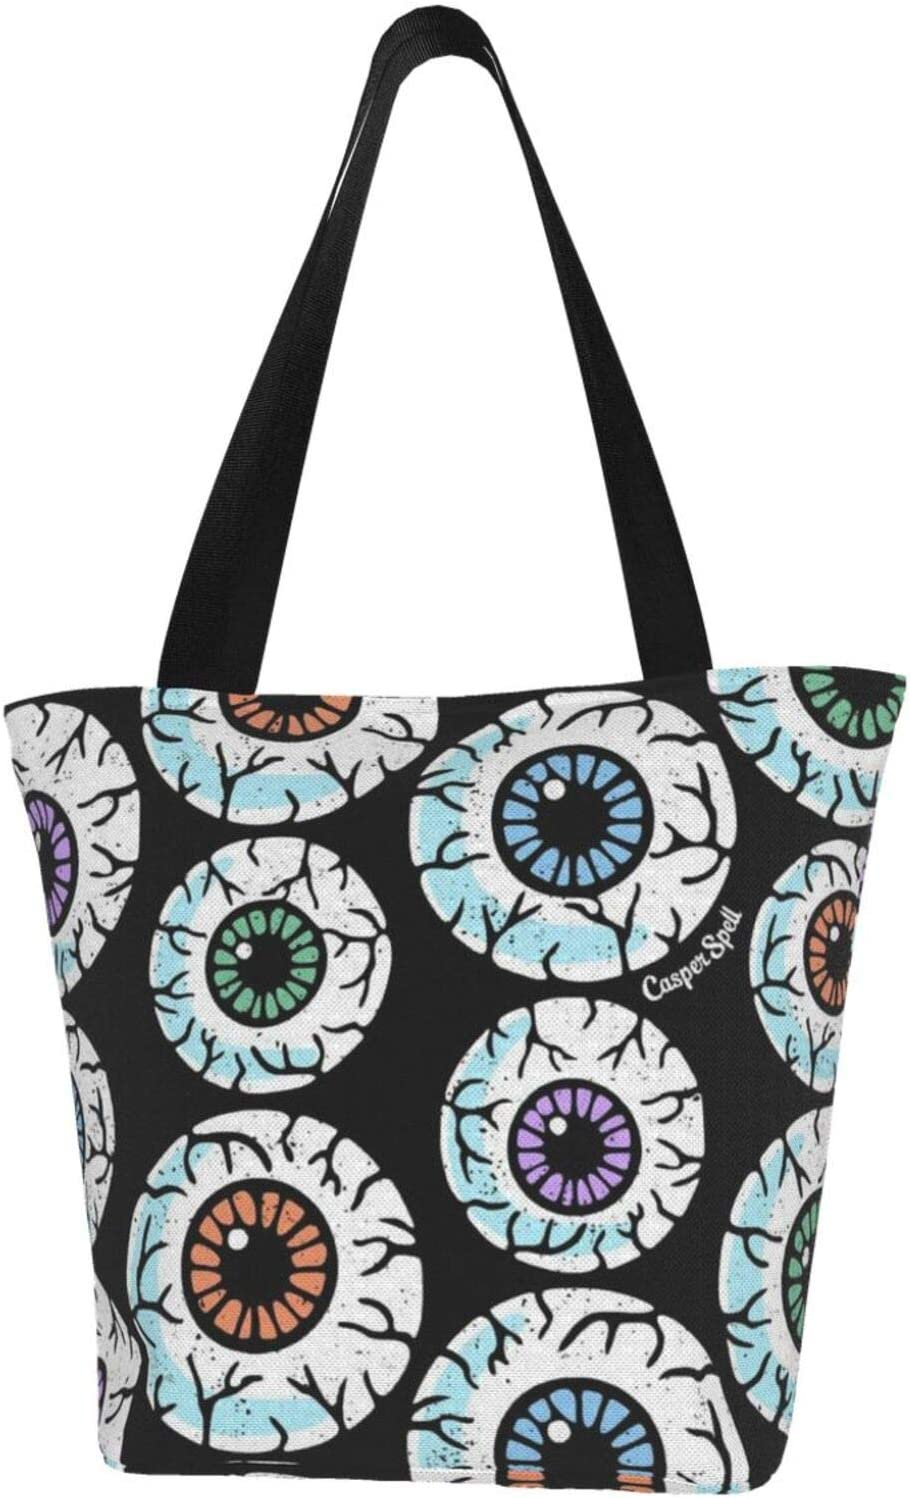 AKLID 2021 autumn and winter new Zombie outlet Eyes Extra Large Water Canvas Tote fo Bag Resistant